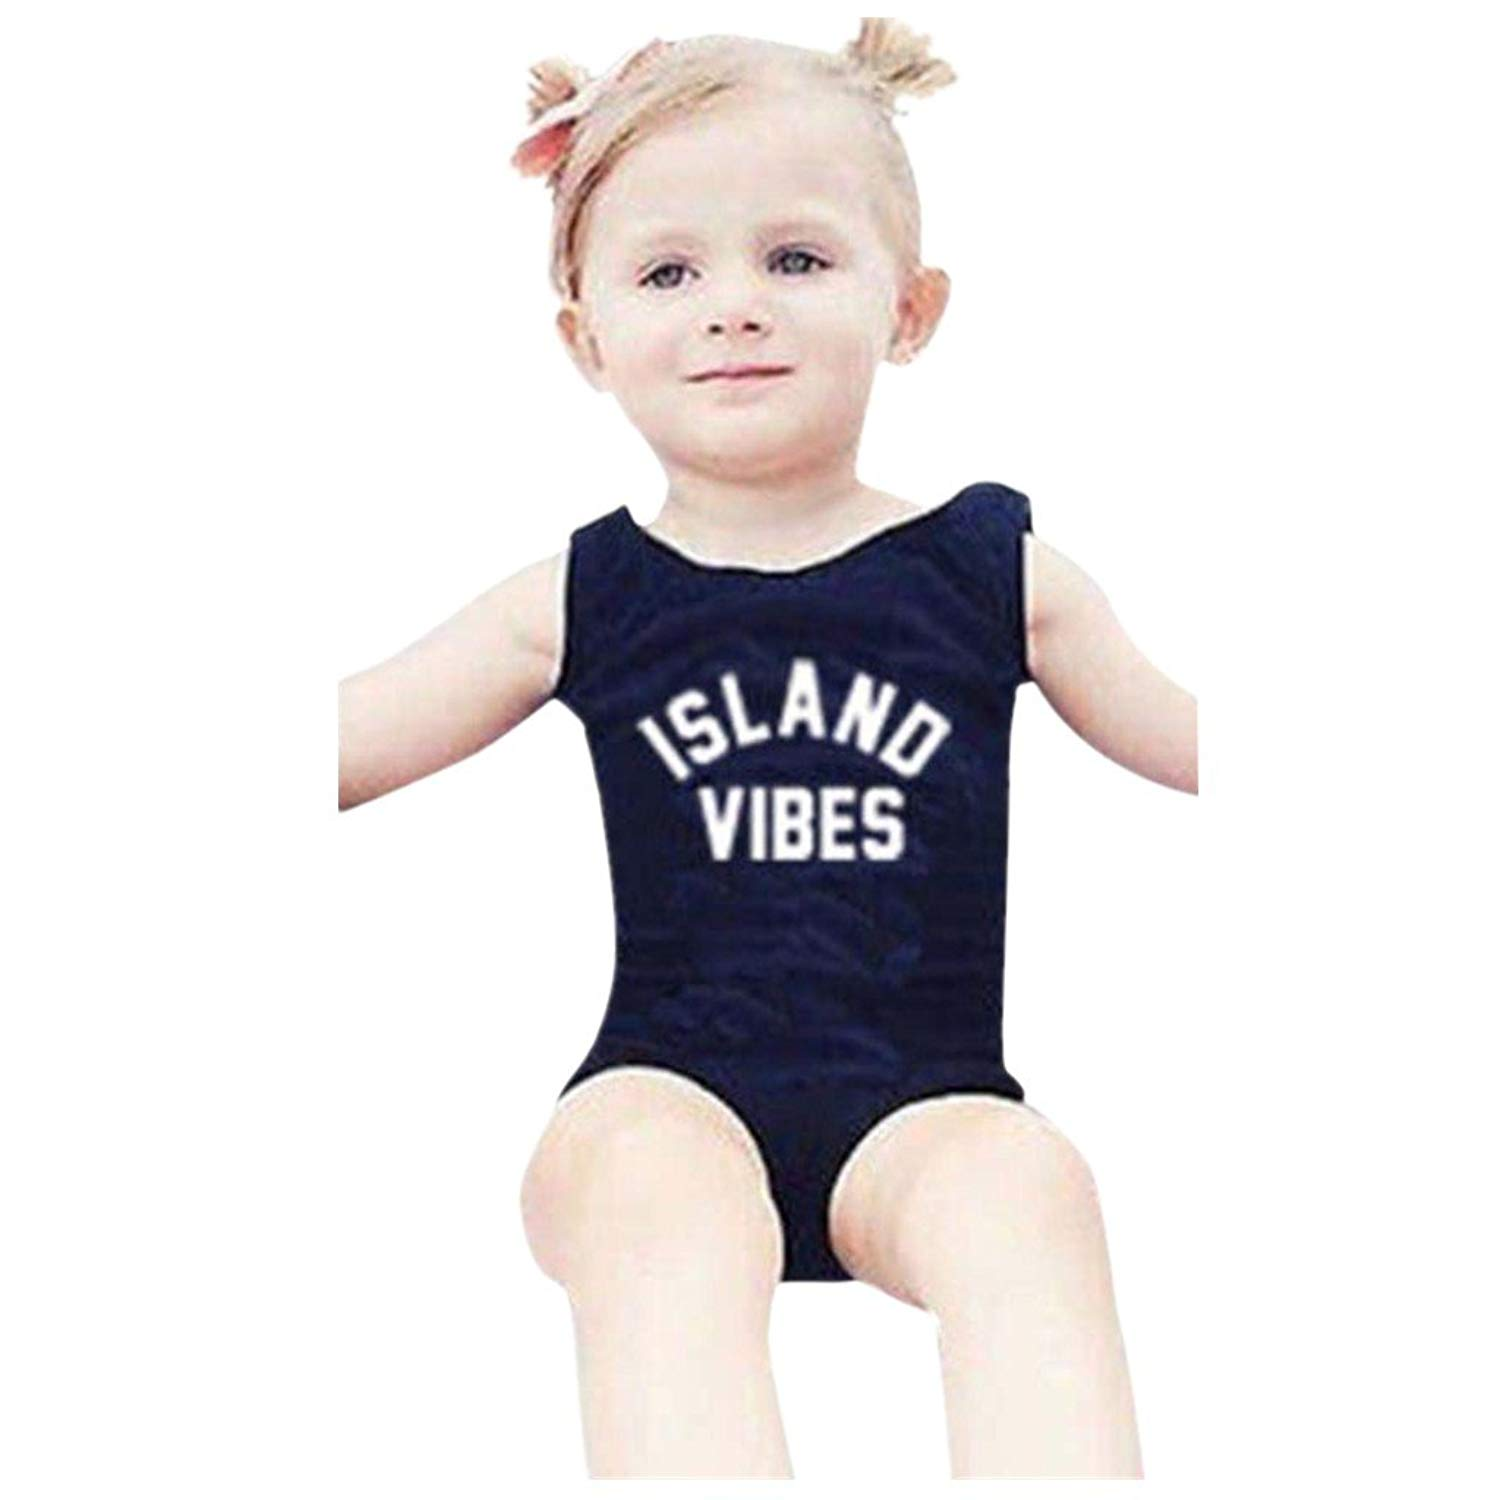 a9fb1444980c8 Get Quotations · FarJing Hot Sale Newborn Swimwear Toddler Girls Solid  Letter Print One Piece Swimsuit Clothes